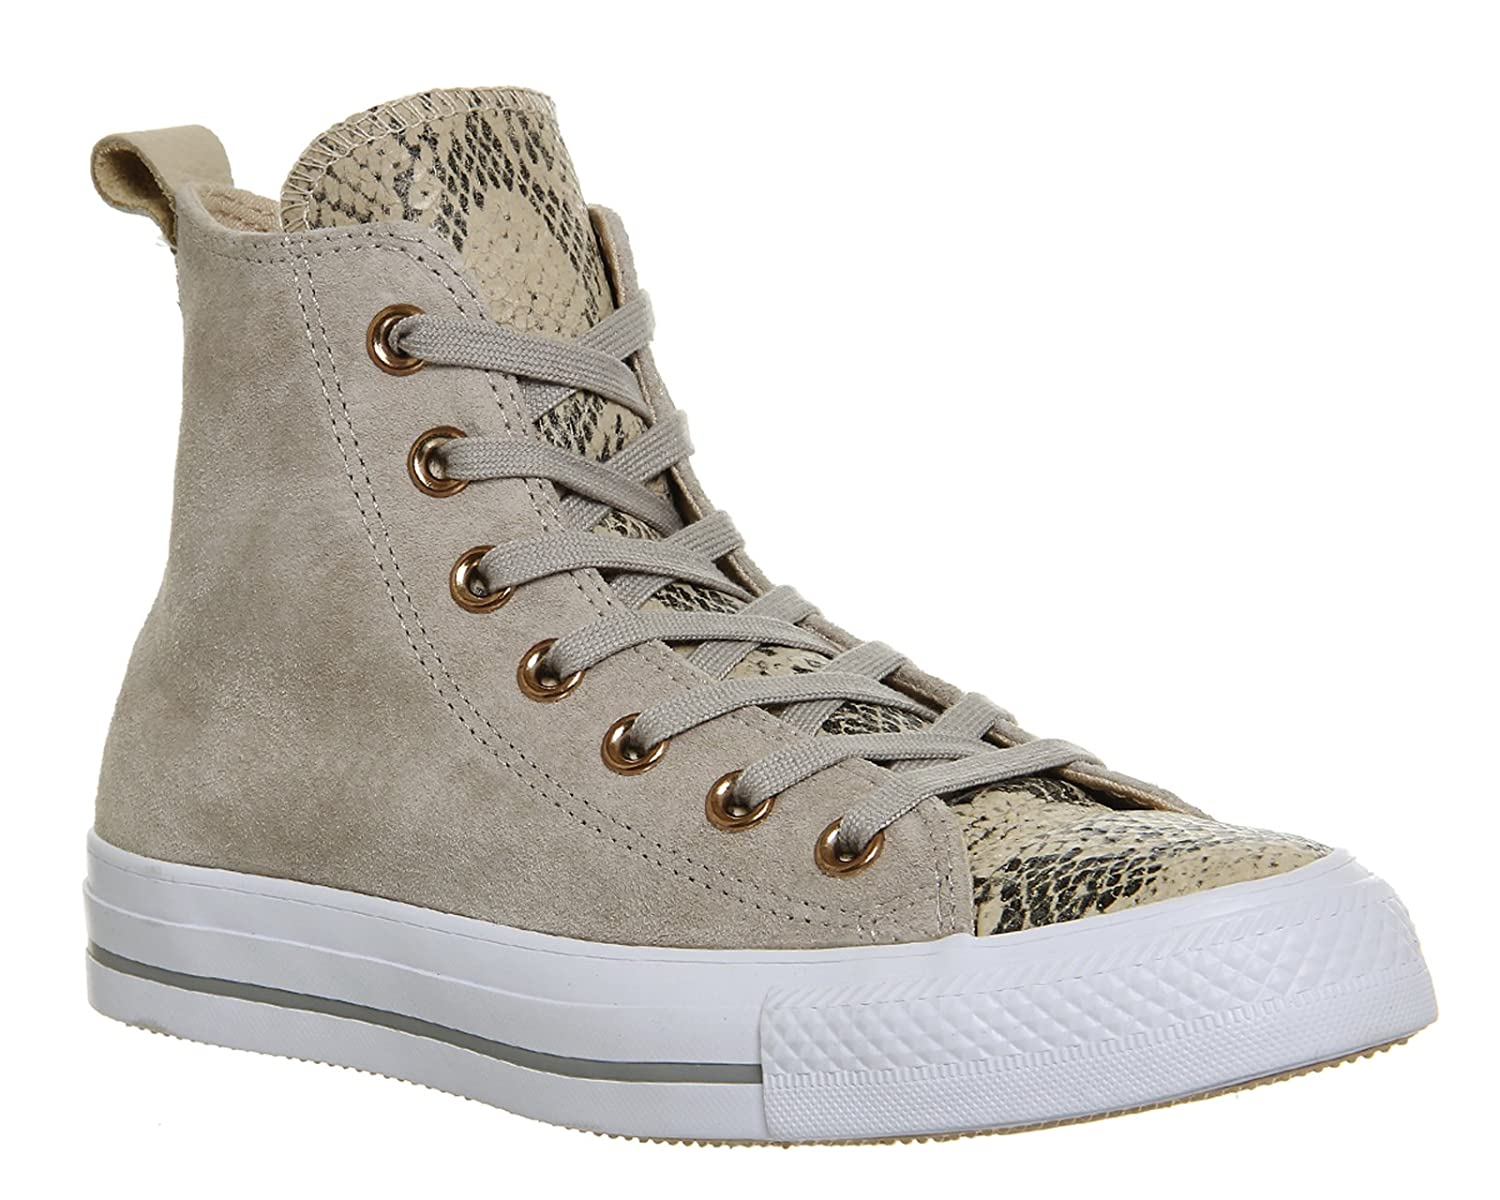 Converse Unisex Chuck Taylor All-Star High-Top Casual Sneakers in Classic Style and Color and Durable Canvas Uppers B01L0XF1A4 9 M US|Papyrus/White/Dolphin